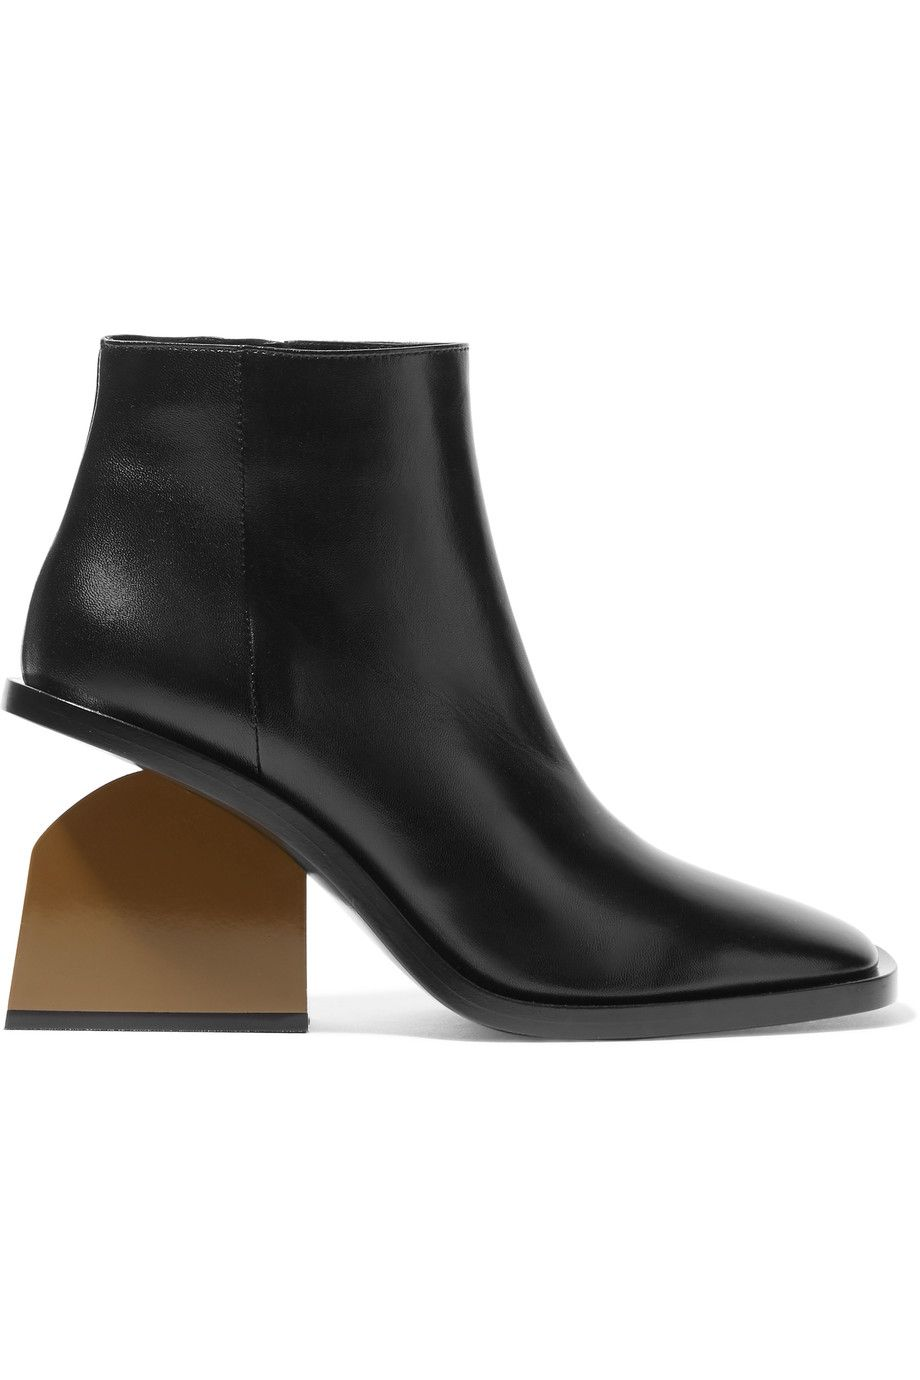 Shop on-sale Marni Leather ankle boots. Browse other discount designer Boots  & more